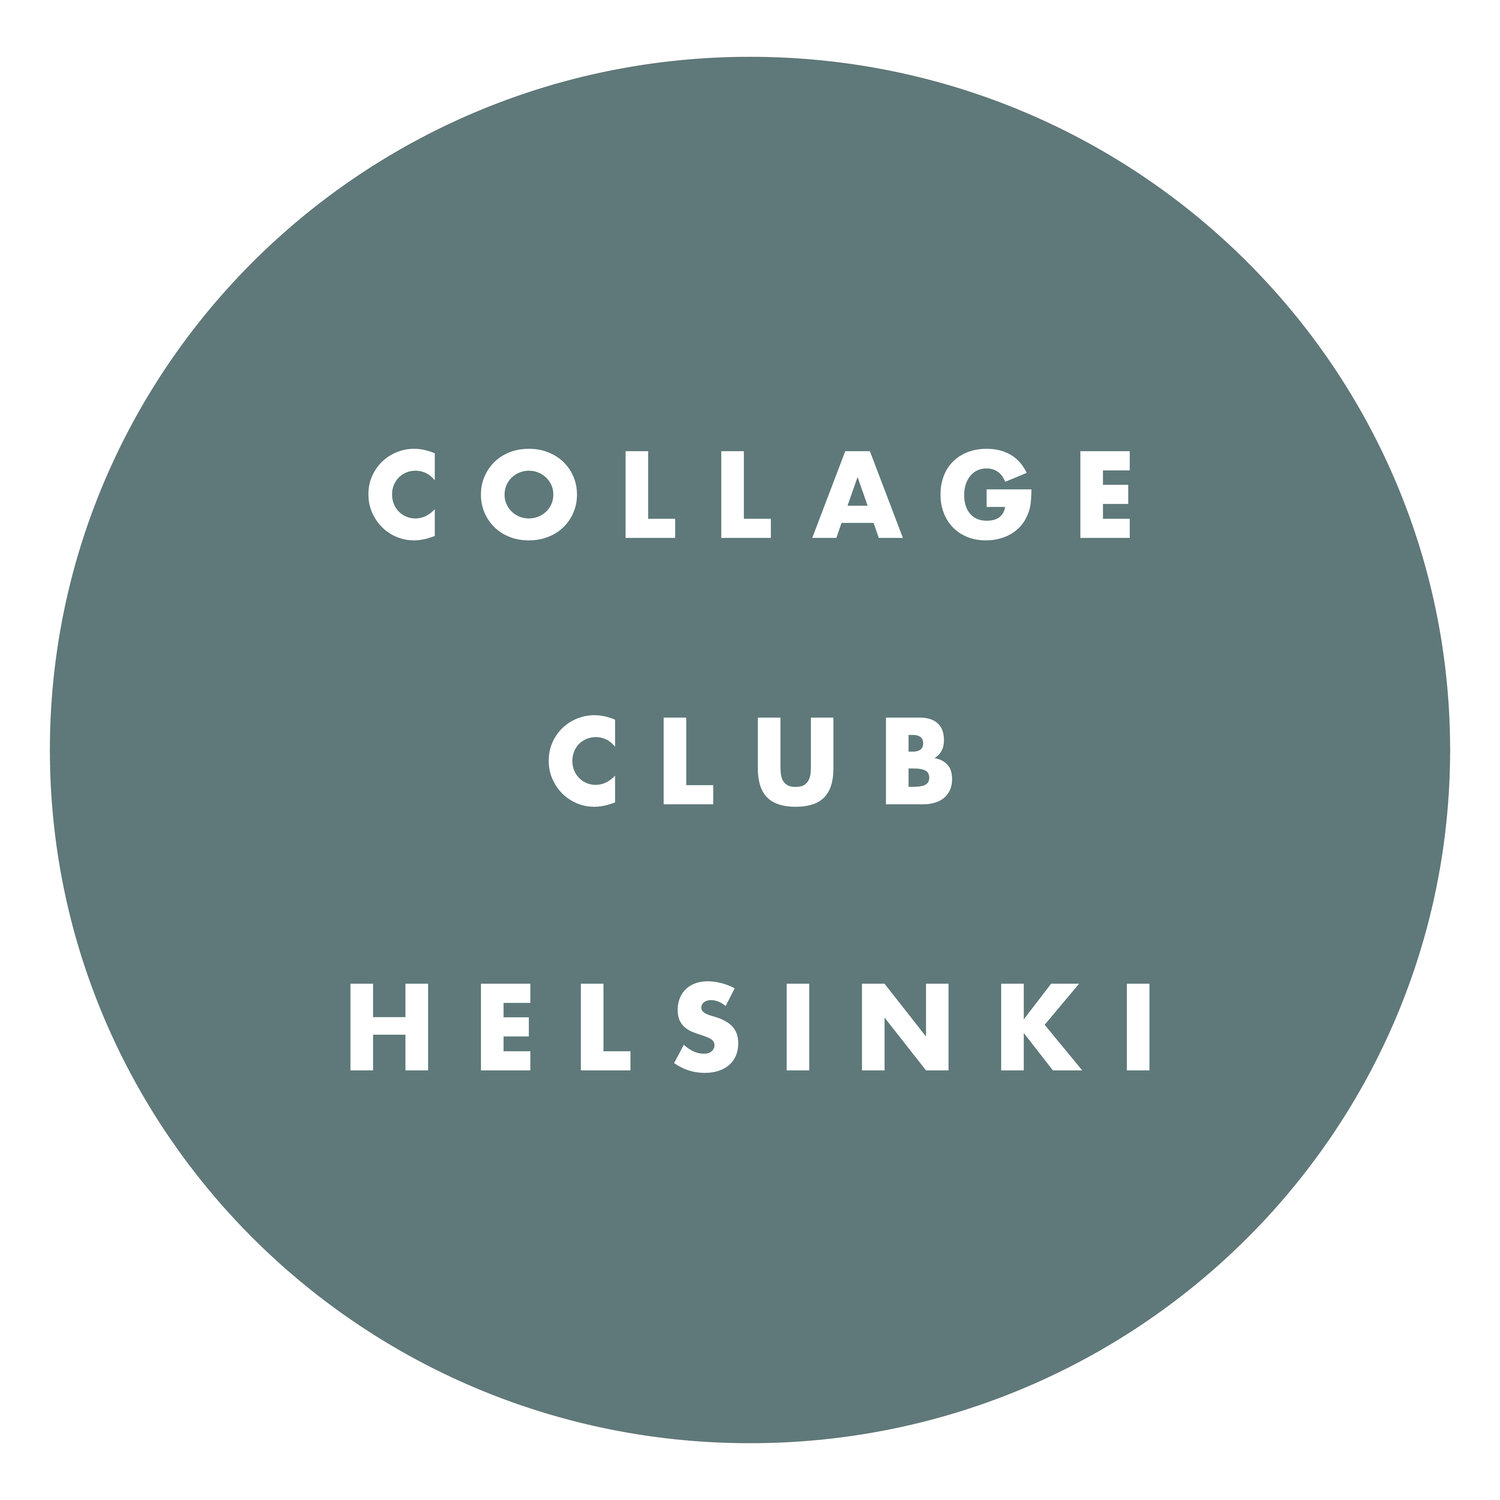 Collage Club Helsinki